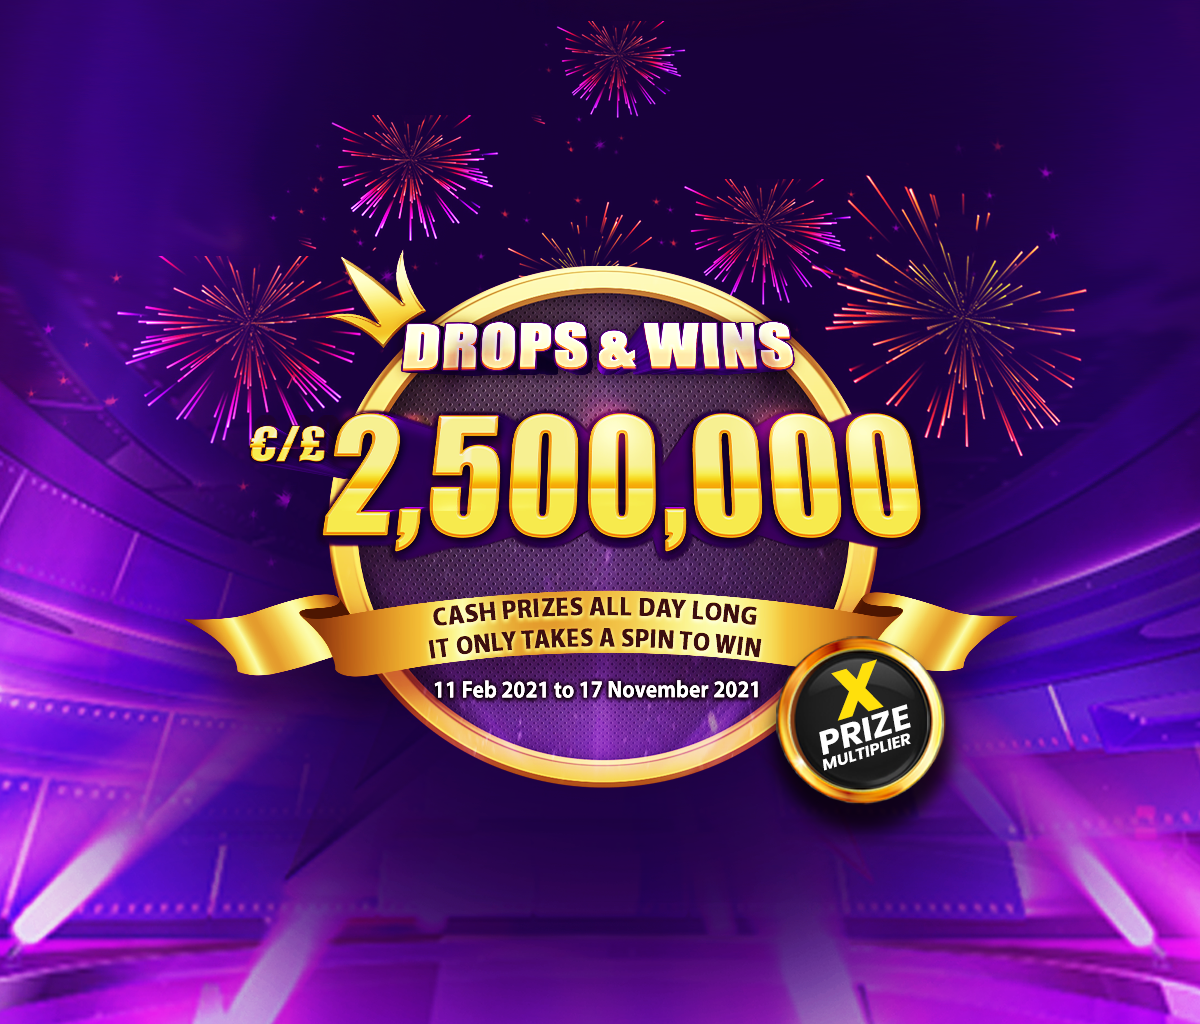 Drops and Wins tablet banner